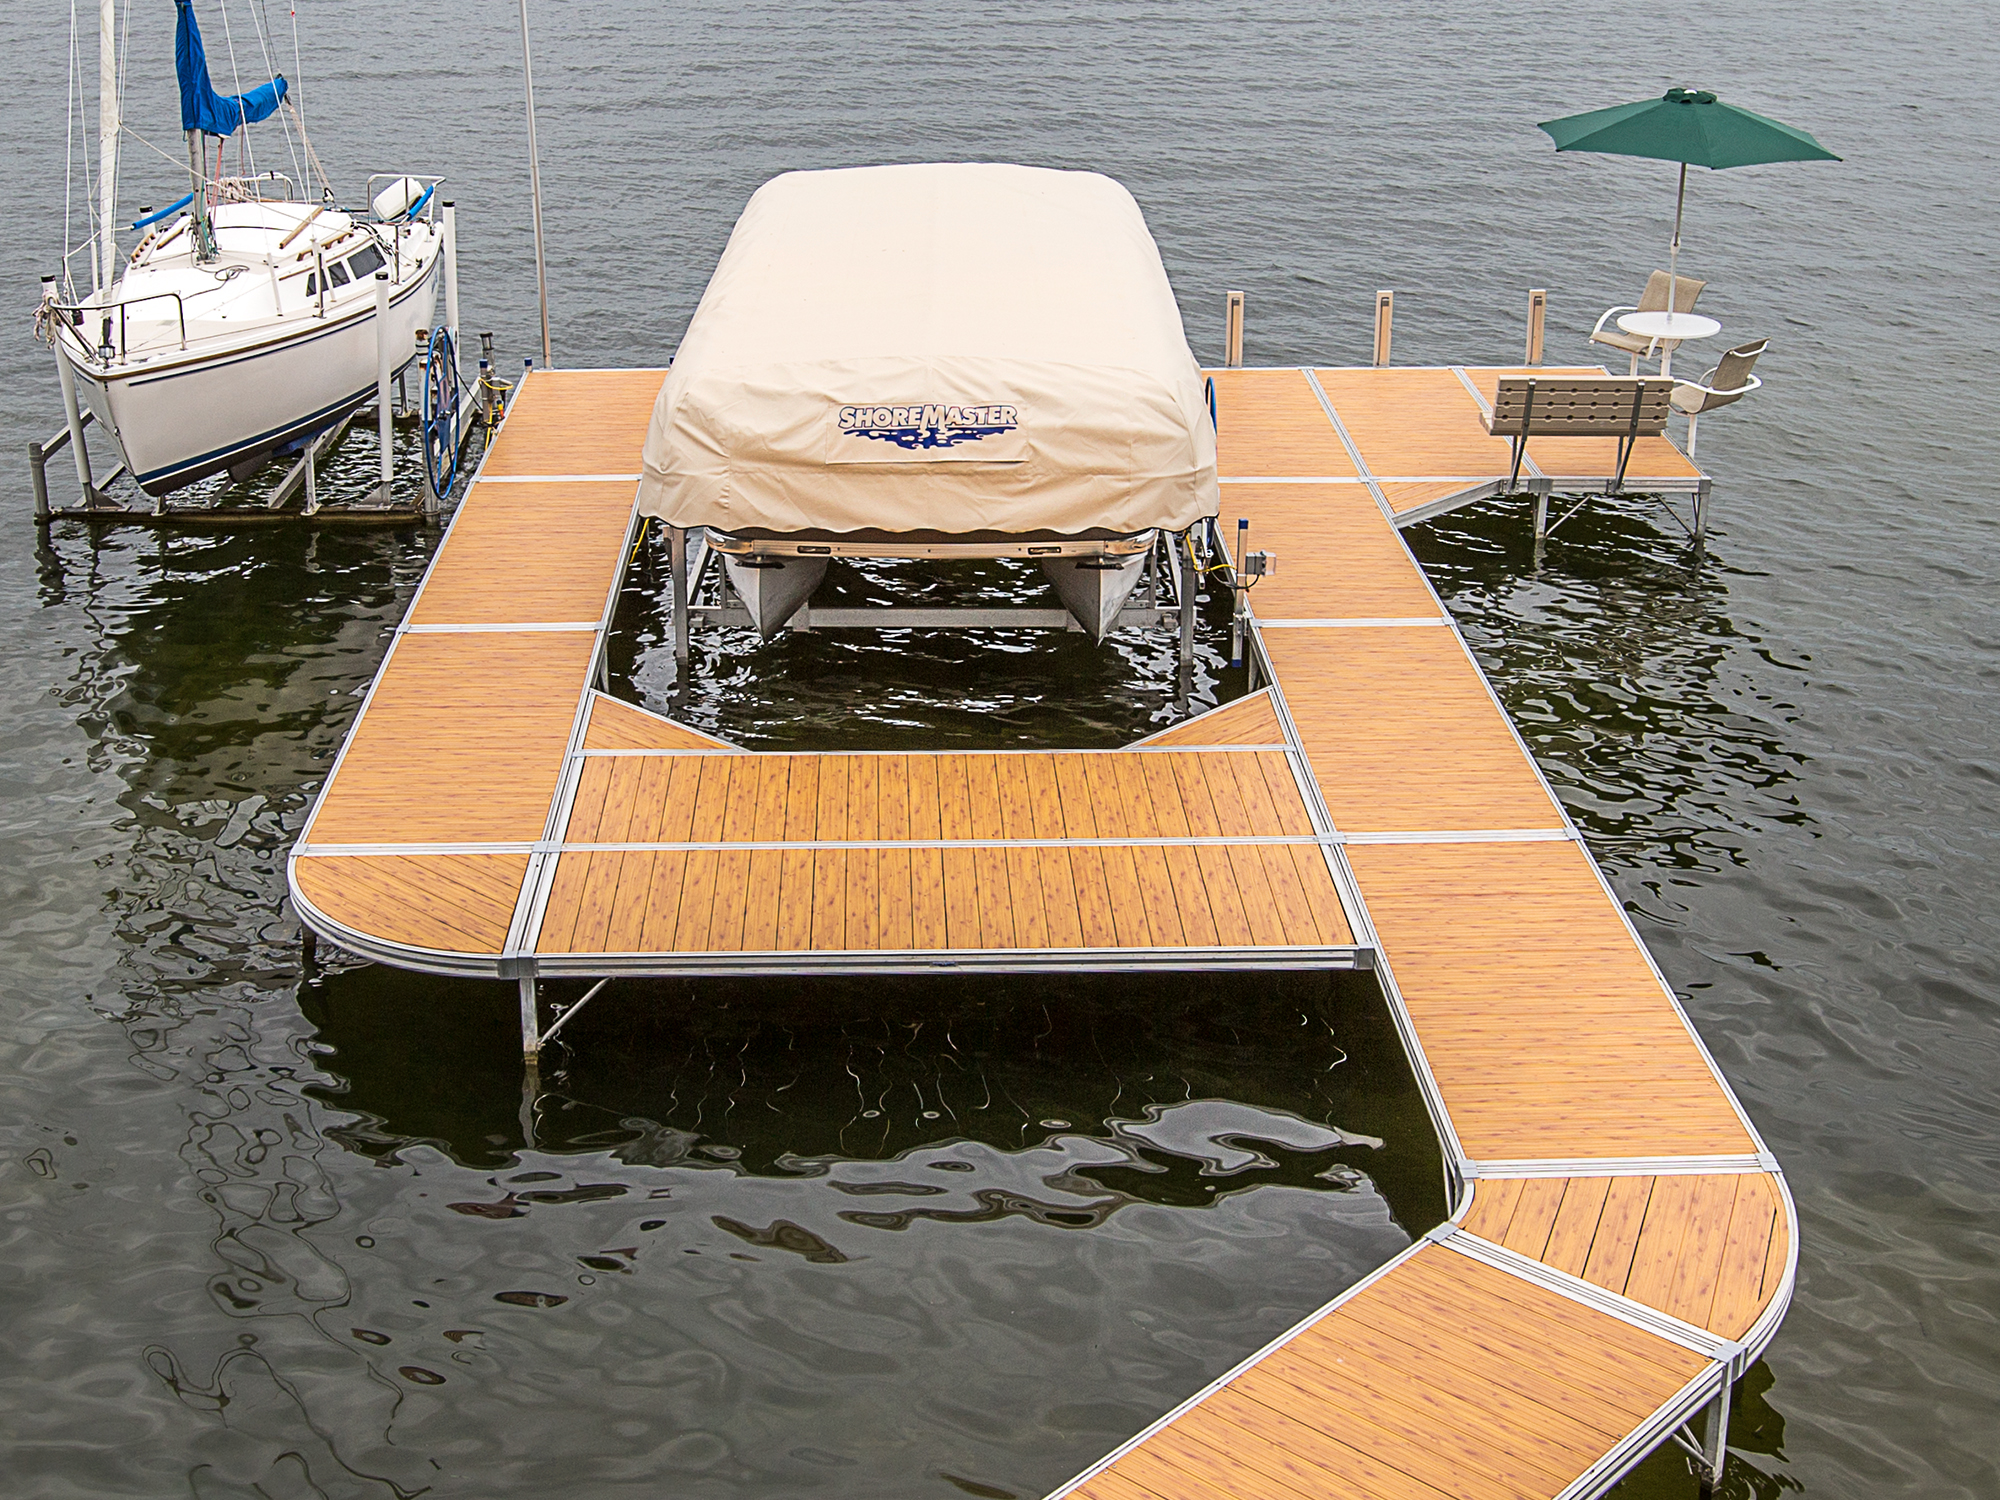 ShoreMaster Infinity RS4 with Curve Dock with Traditional Woodgrain and Pontoon Lift with White Canopy